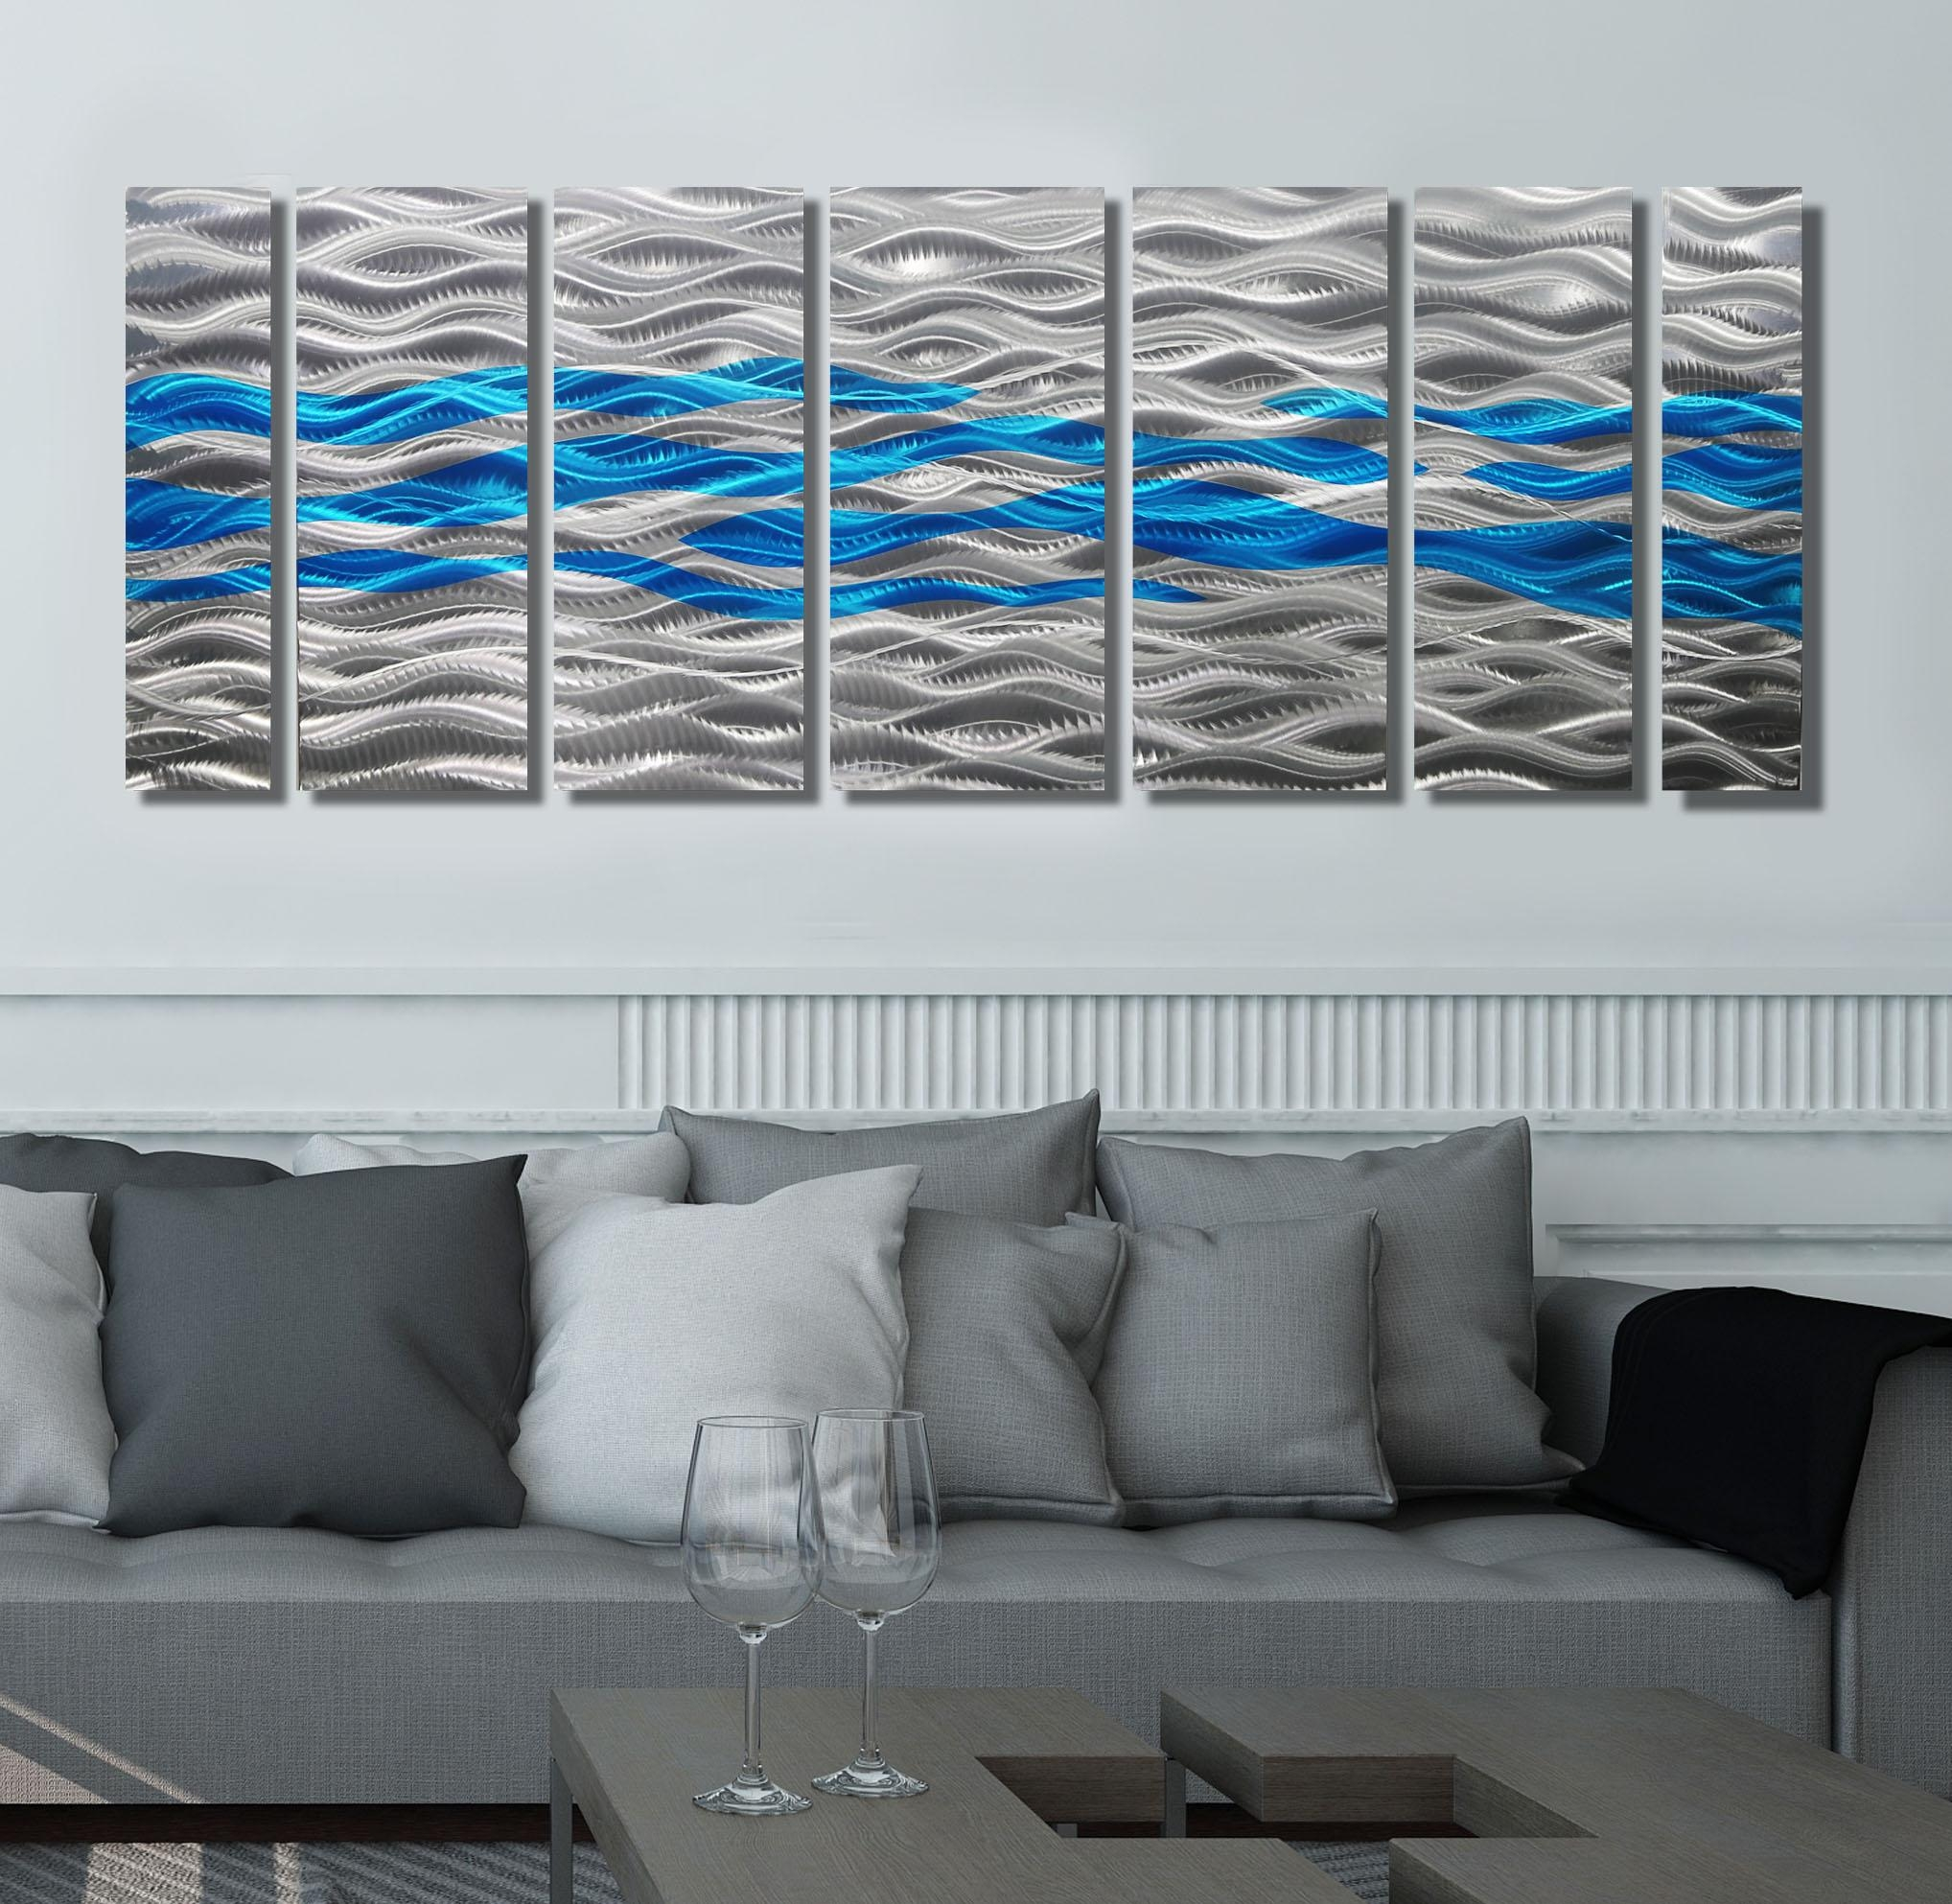 Caliente Aqua – Silver & Aqua Blue Abstract Metal Wall Artjon Pertaining To Blue And Silver Wall Art (Image 9 of 20)